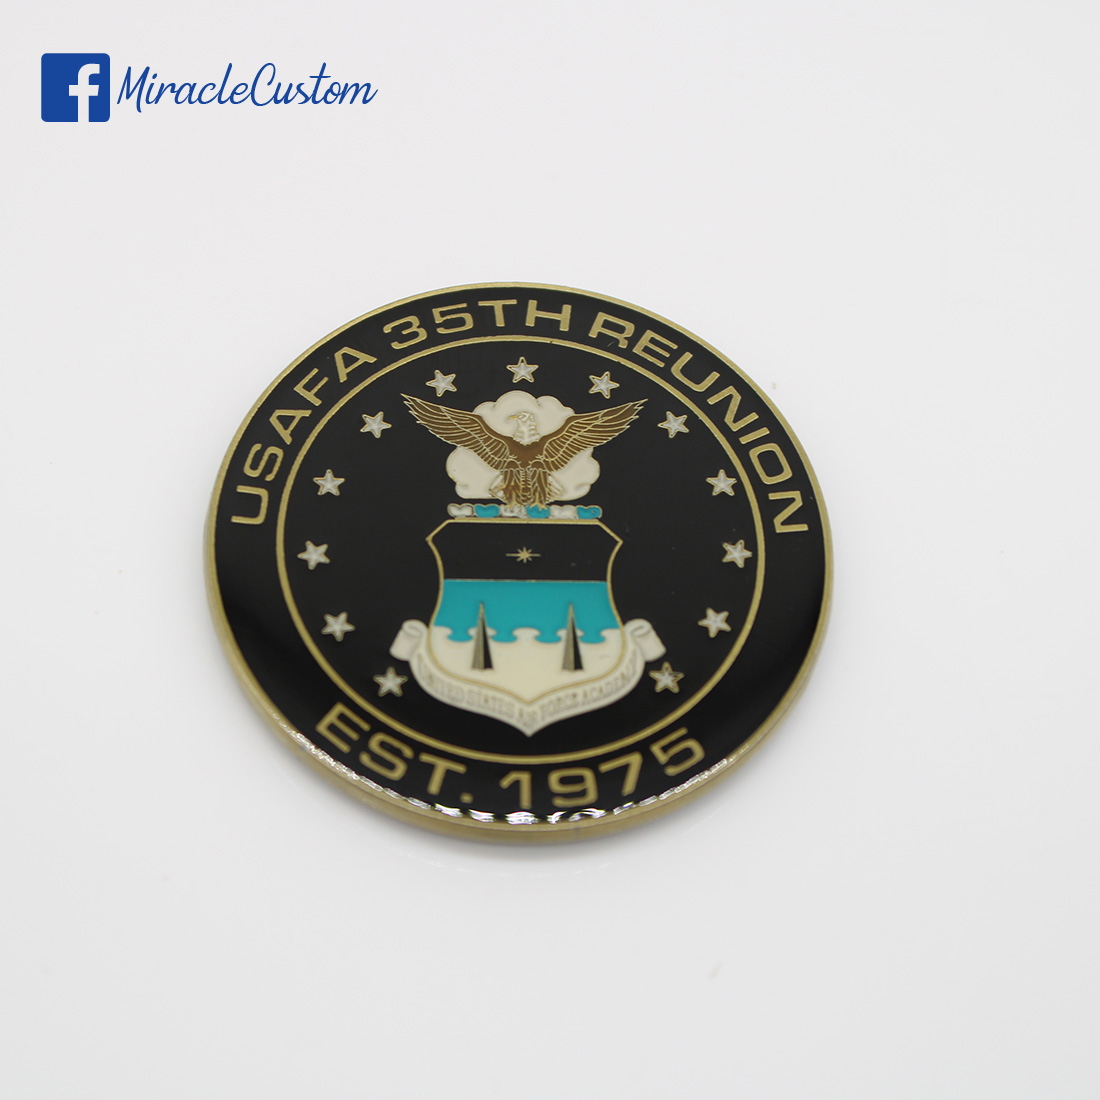 Custom Coins with Epoxy Dome| Quality Challenge Coins|Miracle Custom